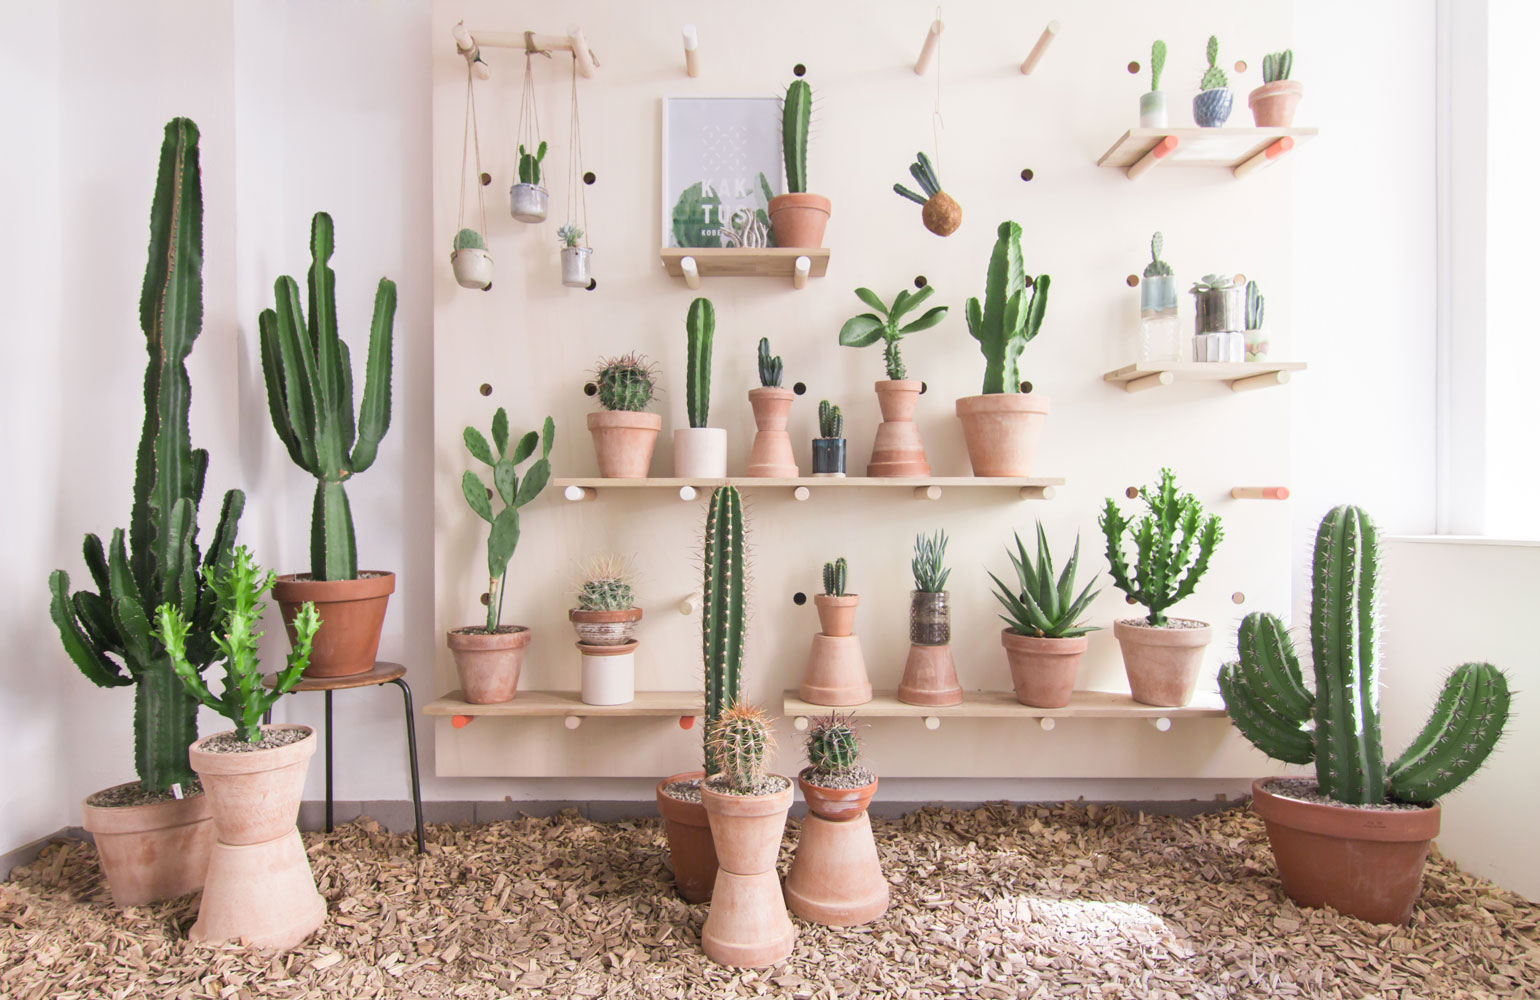 kaktus store, cactus shop by chiara stella home3